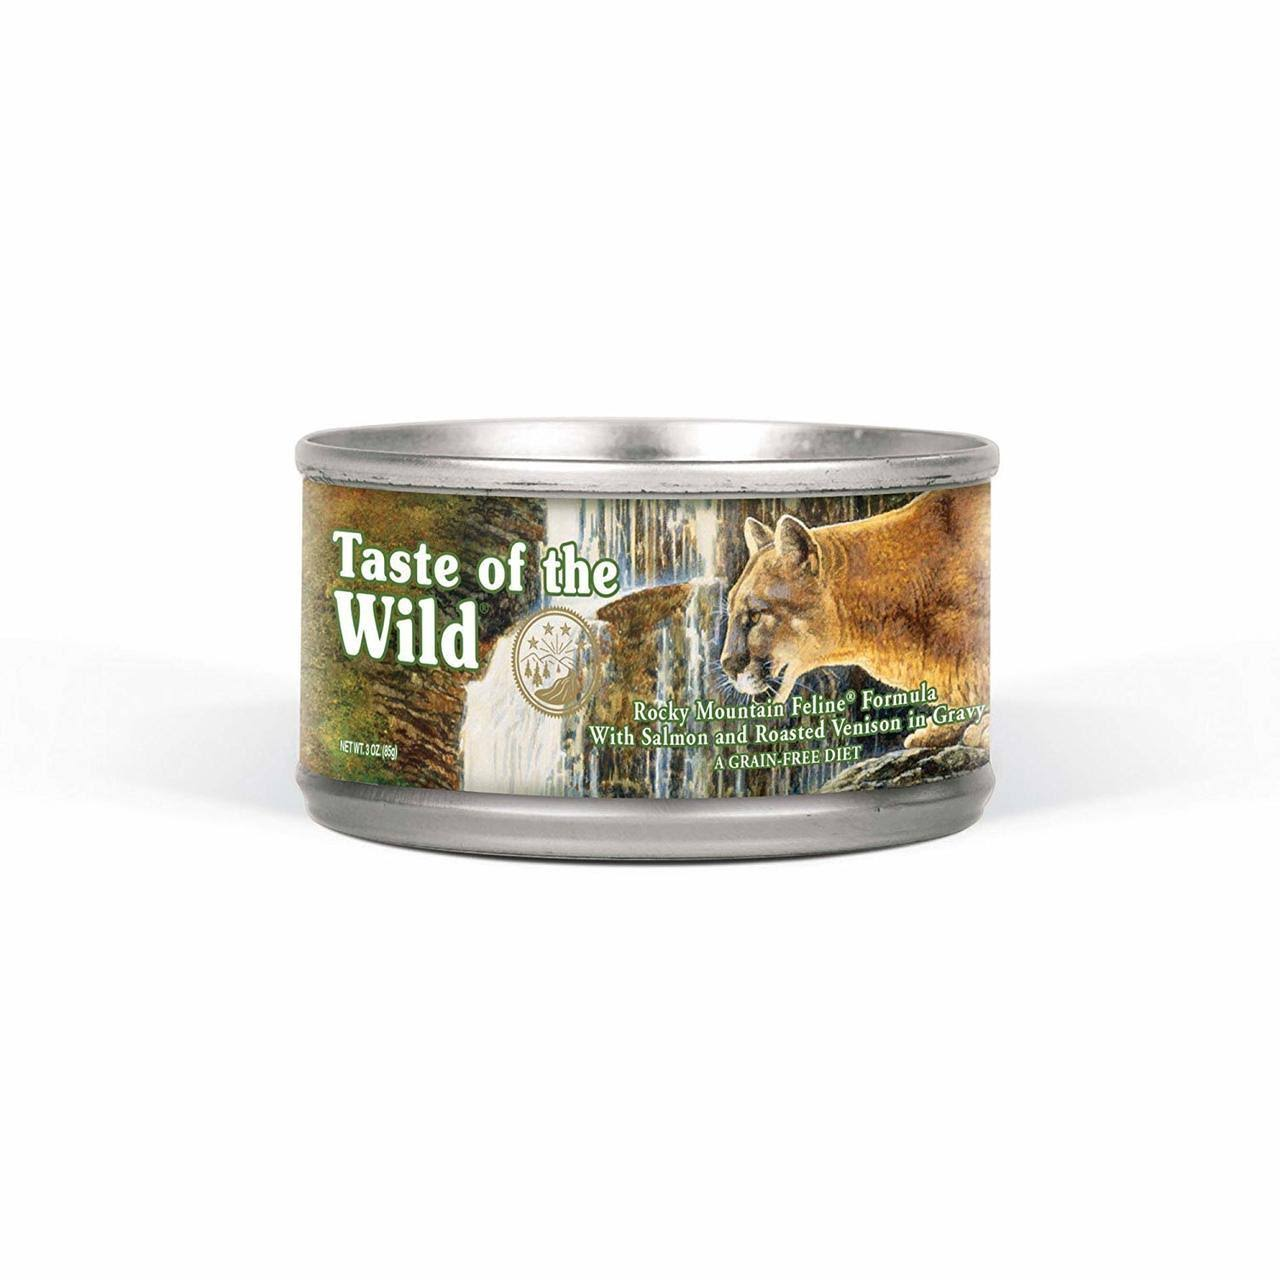 Taste of The Wild Cat Food - Rocky Mountain Formula